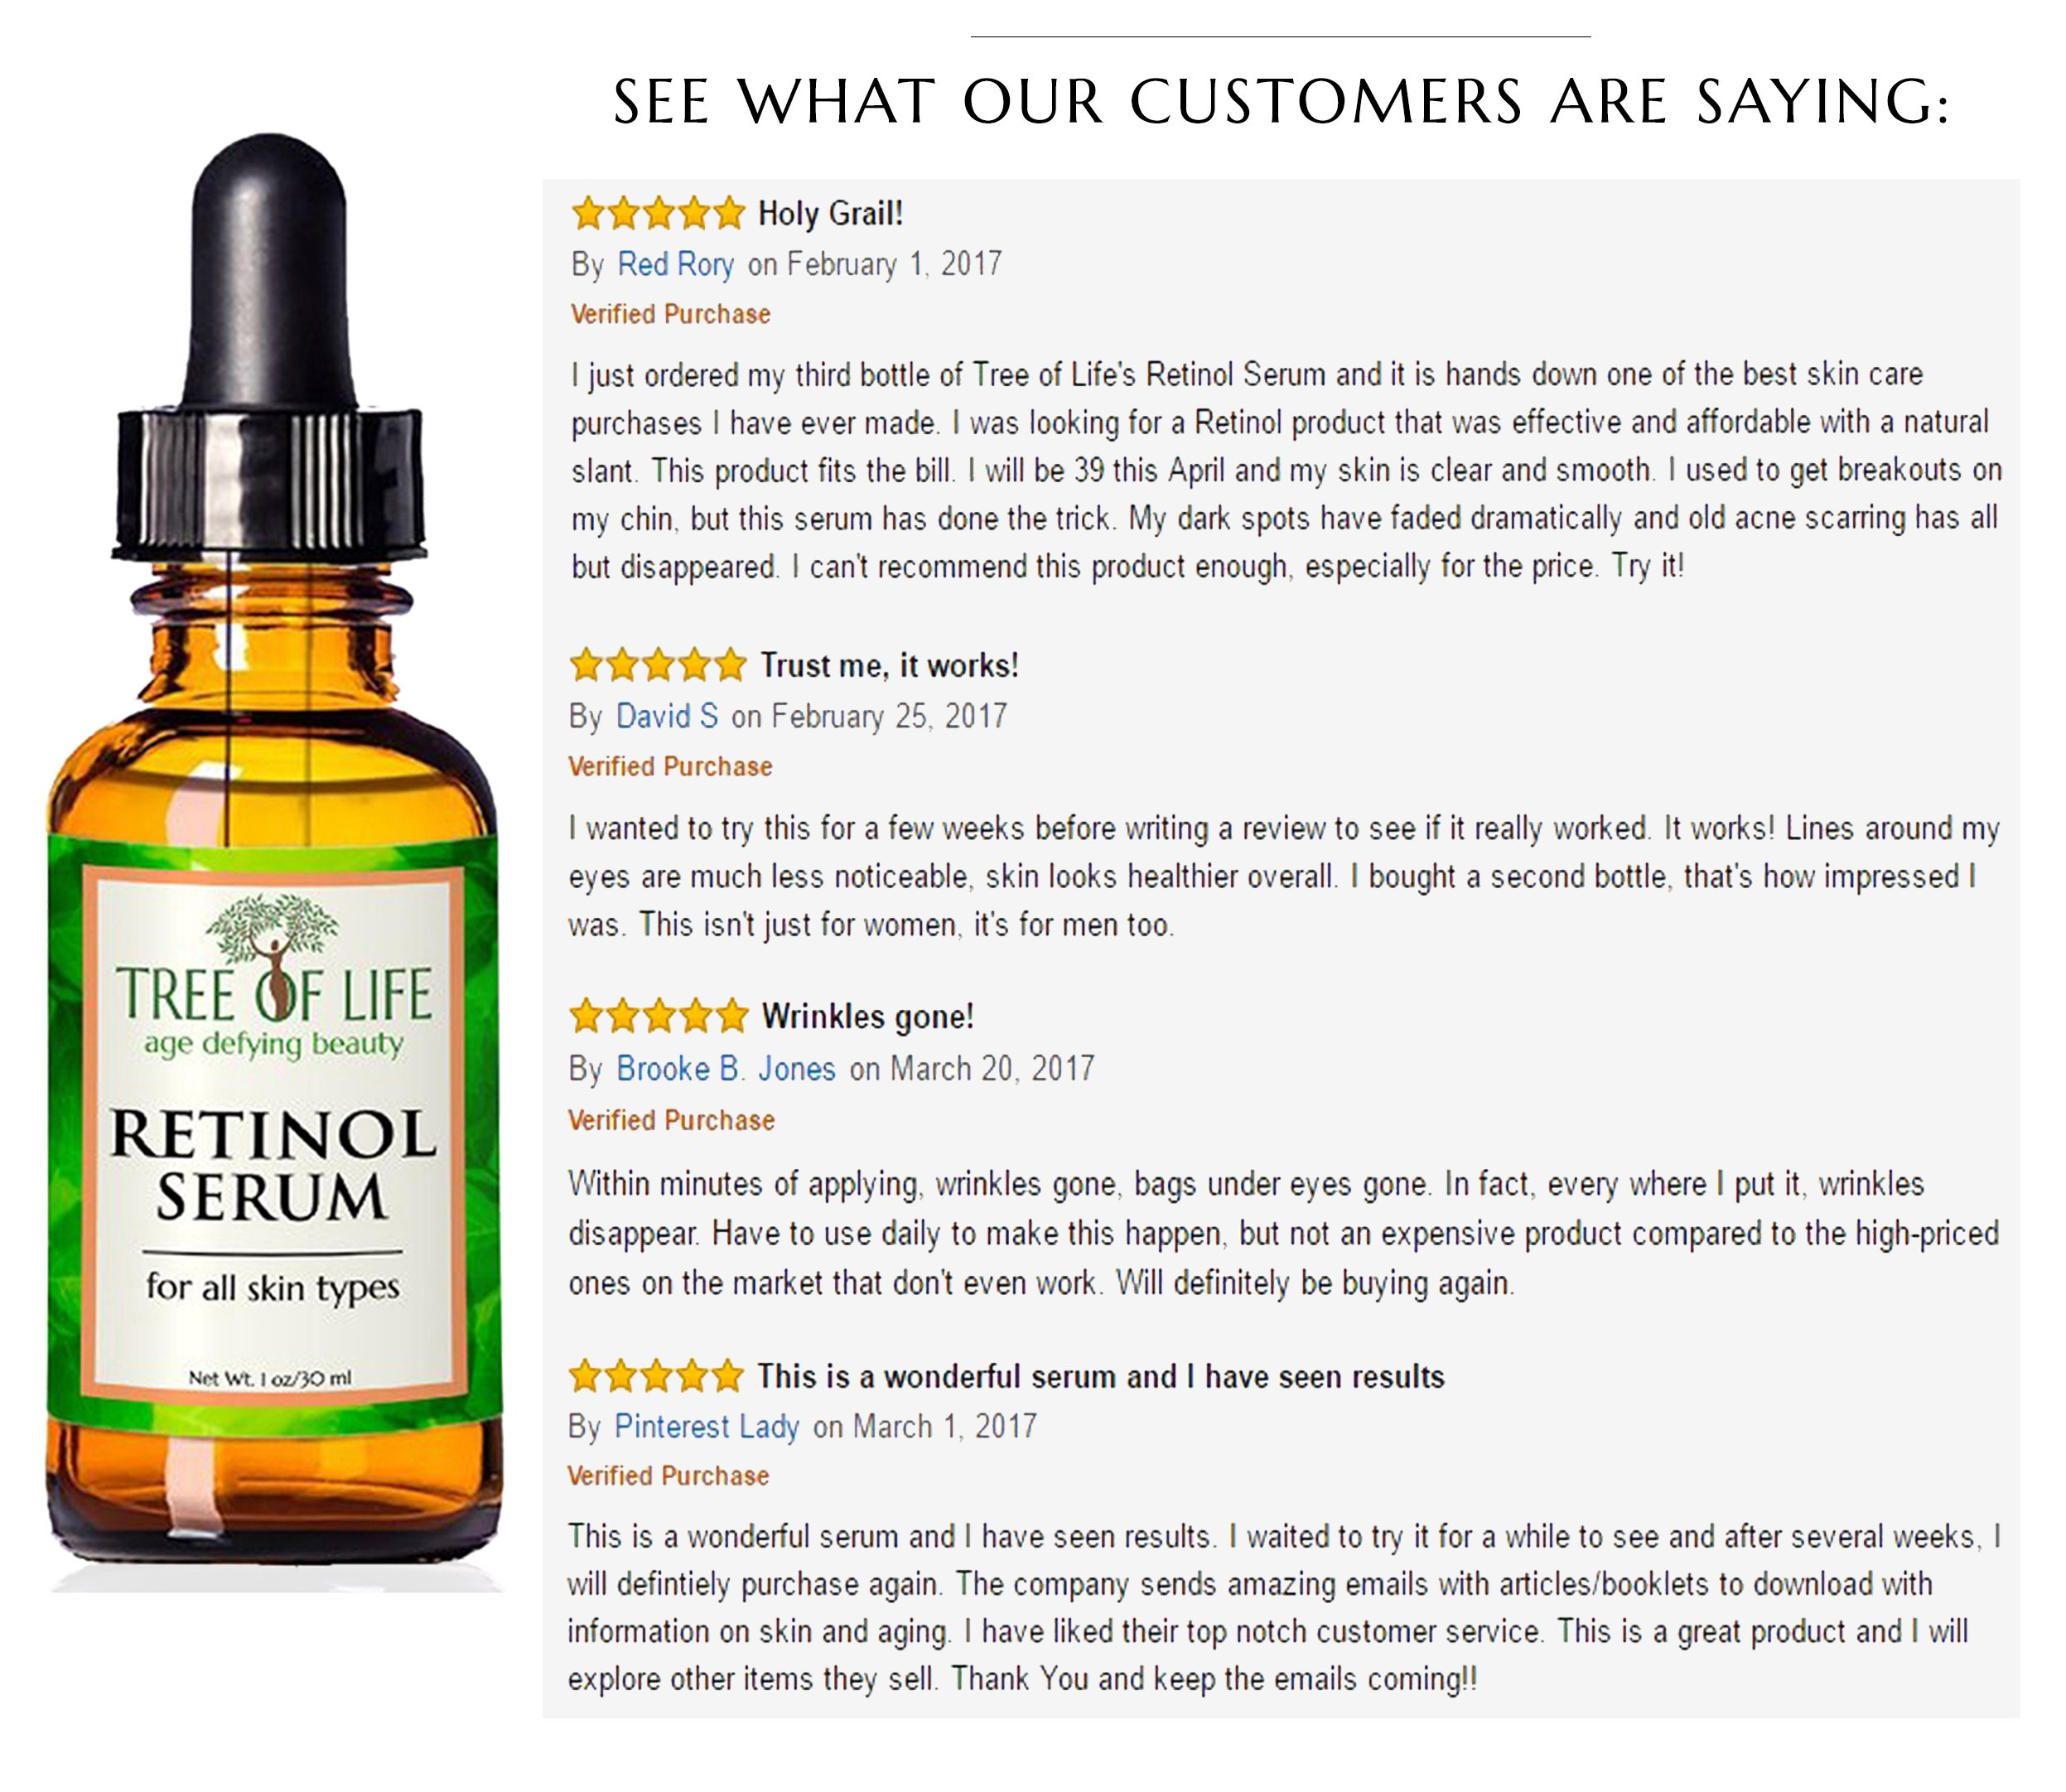 ToLB Retinol Serum - 72% ORGANIC - Clinical Strength Retinol Serum Face Moisturizer Cream for Anti Aging, Anti Wrinkle, Acne - Organic and Natural Ingredients - 1 oz by Flawless. Younger. Perfect. (Image #3)